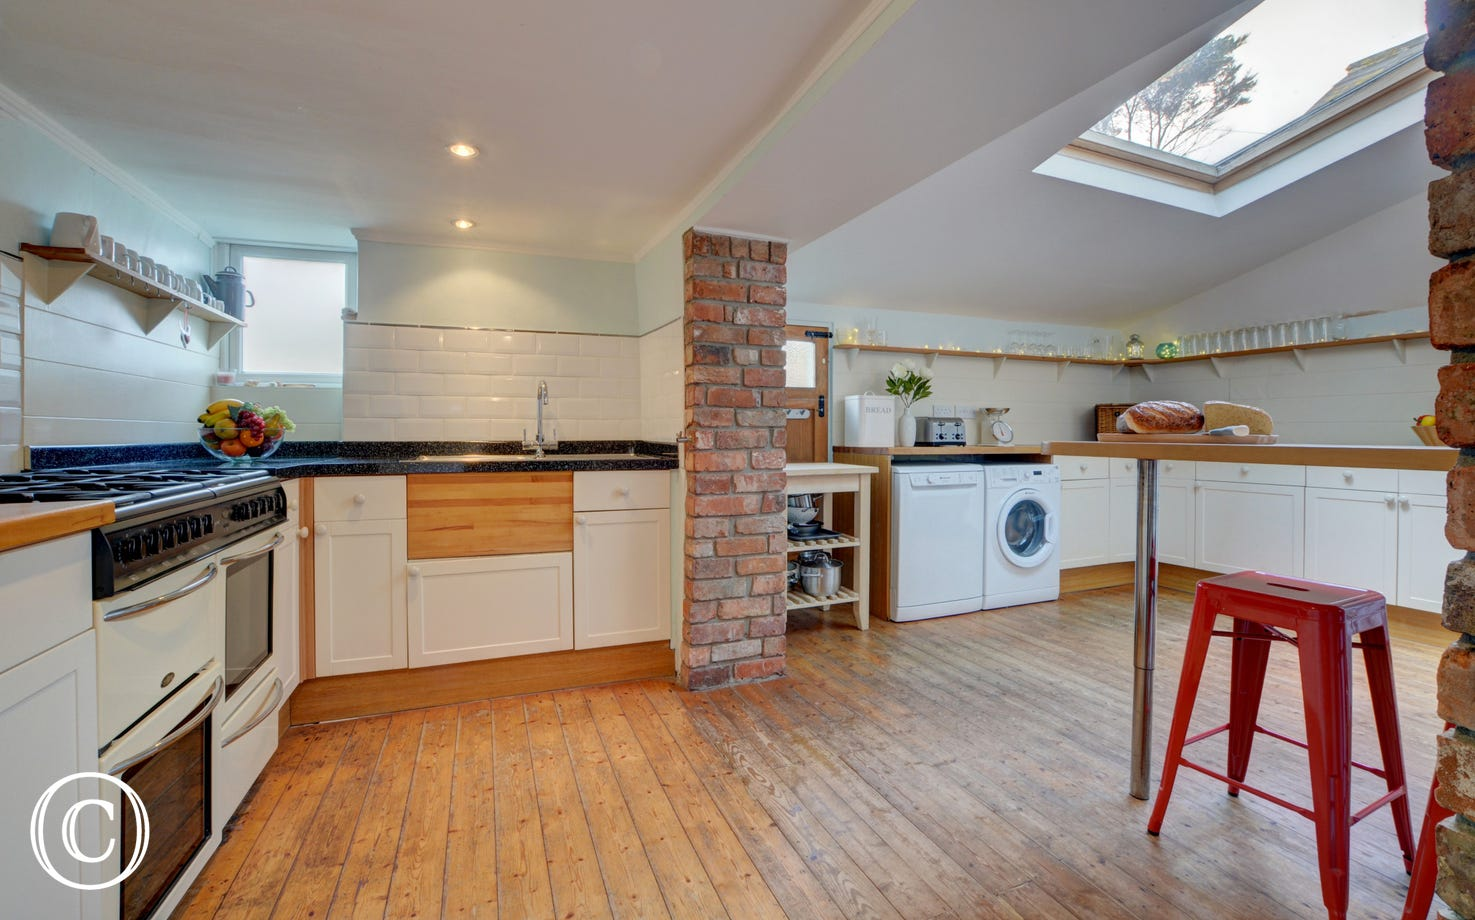 Very spacious and well equipped kitchen